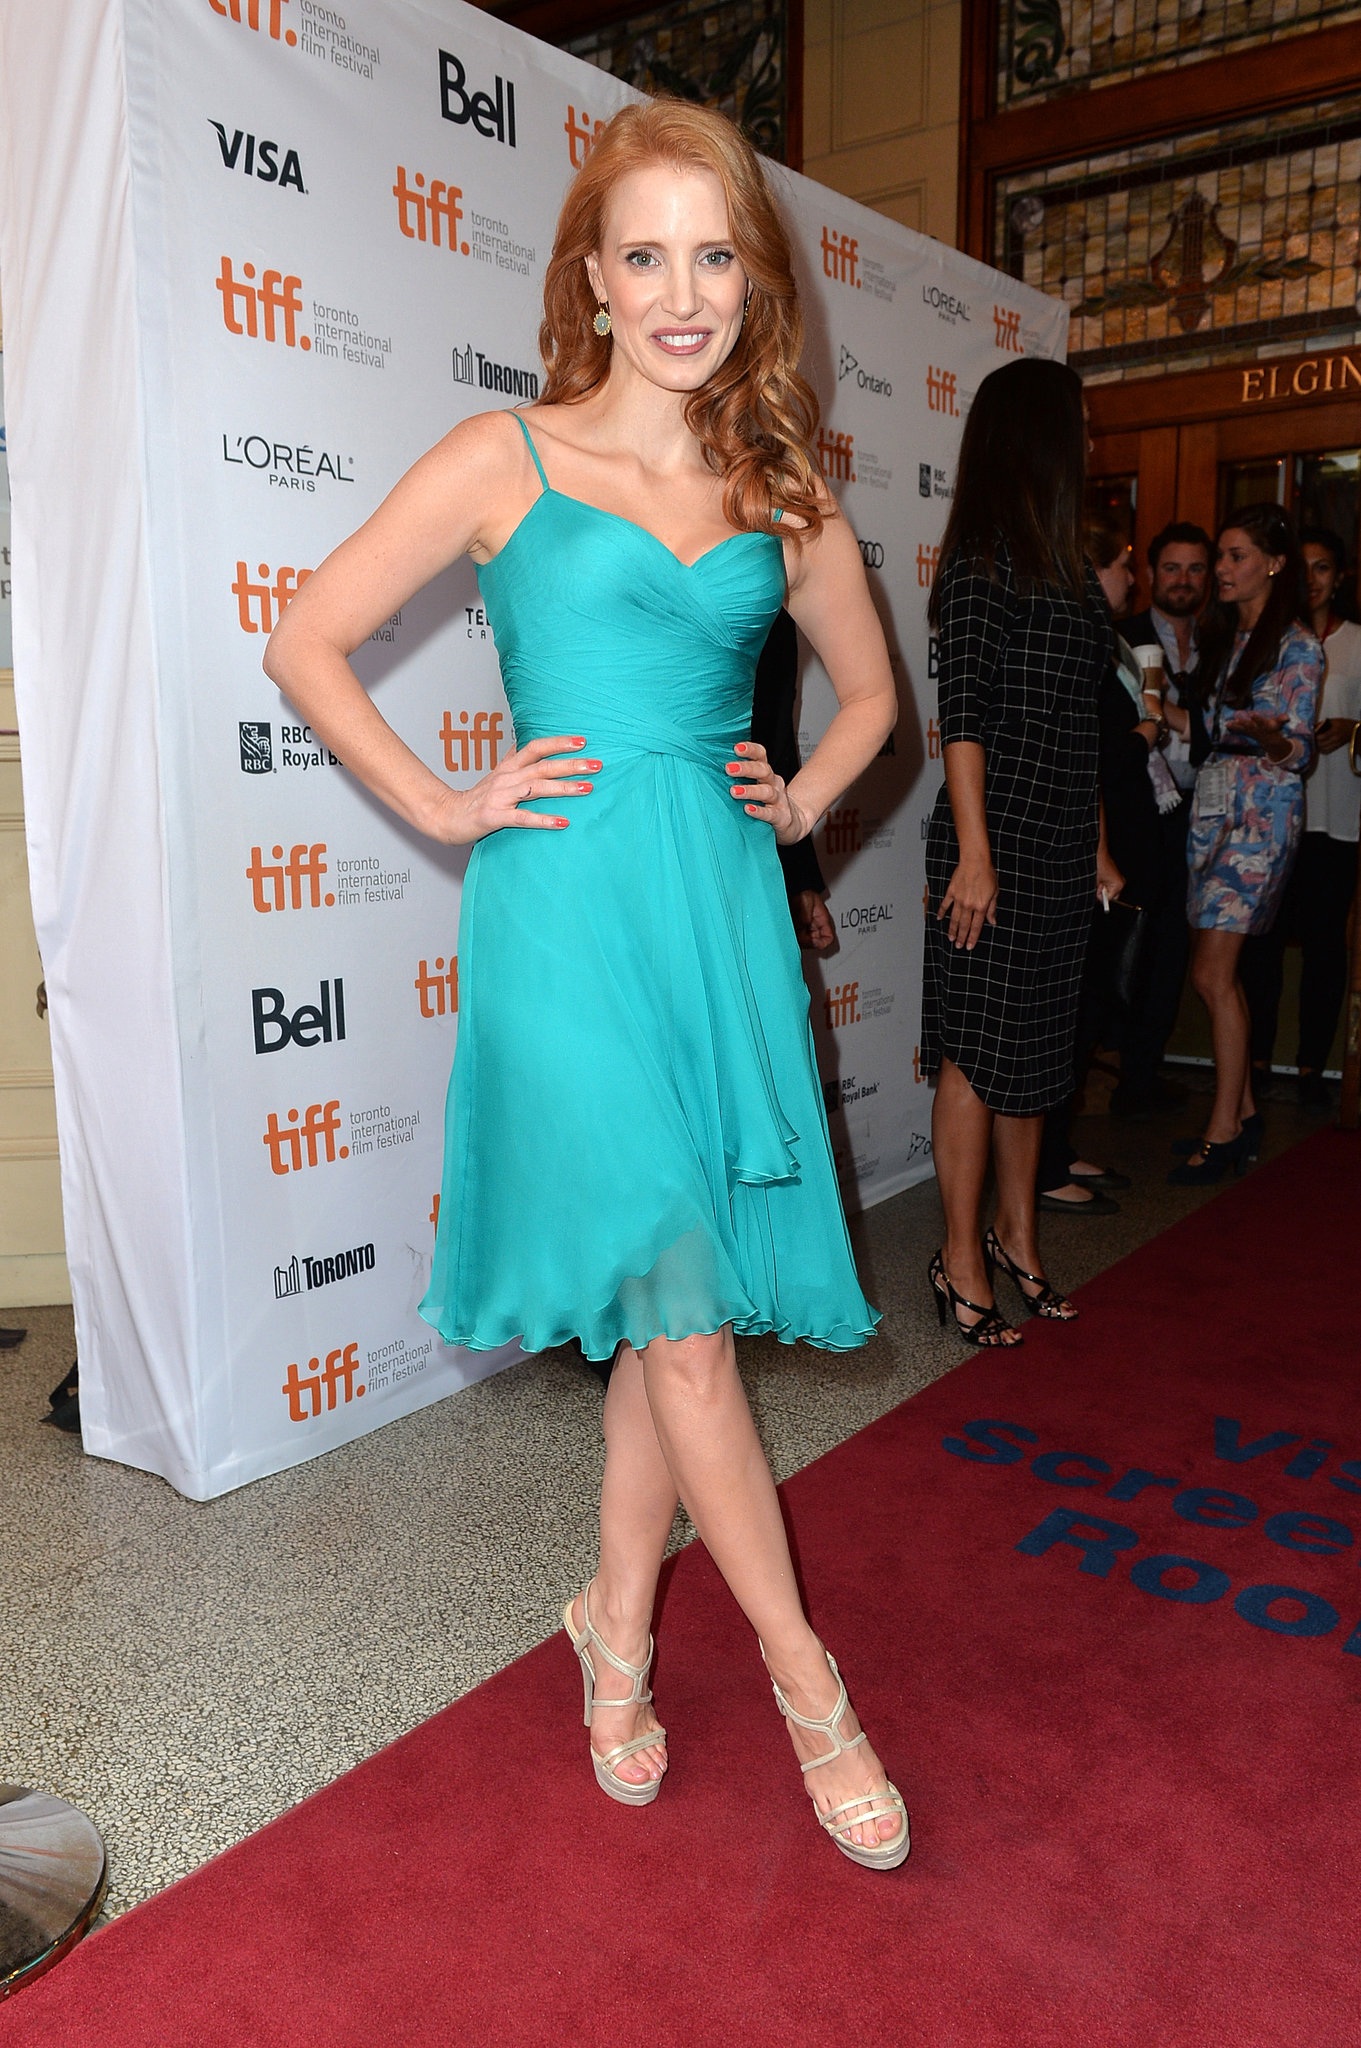 Jessica Chastain posed on the red carpet during the premiere of The Disappearance of Eleanor Rigby: Him and Her.